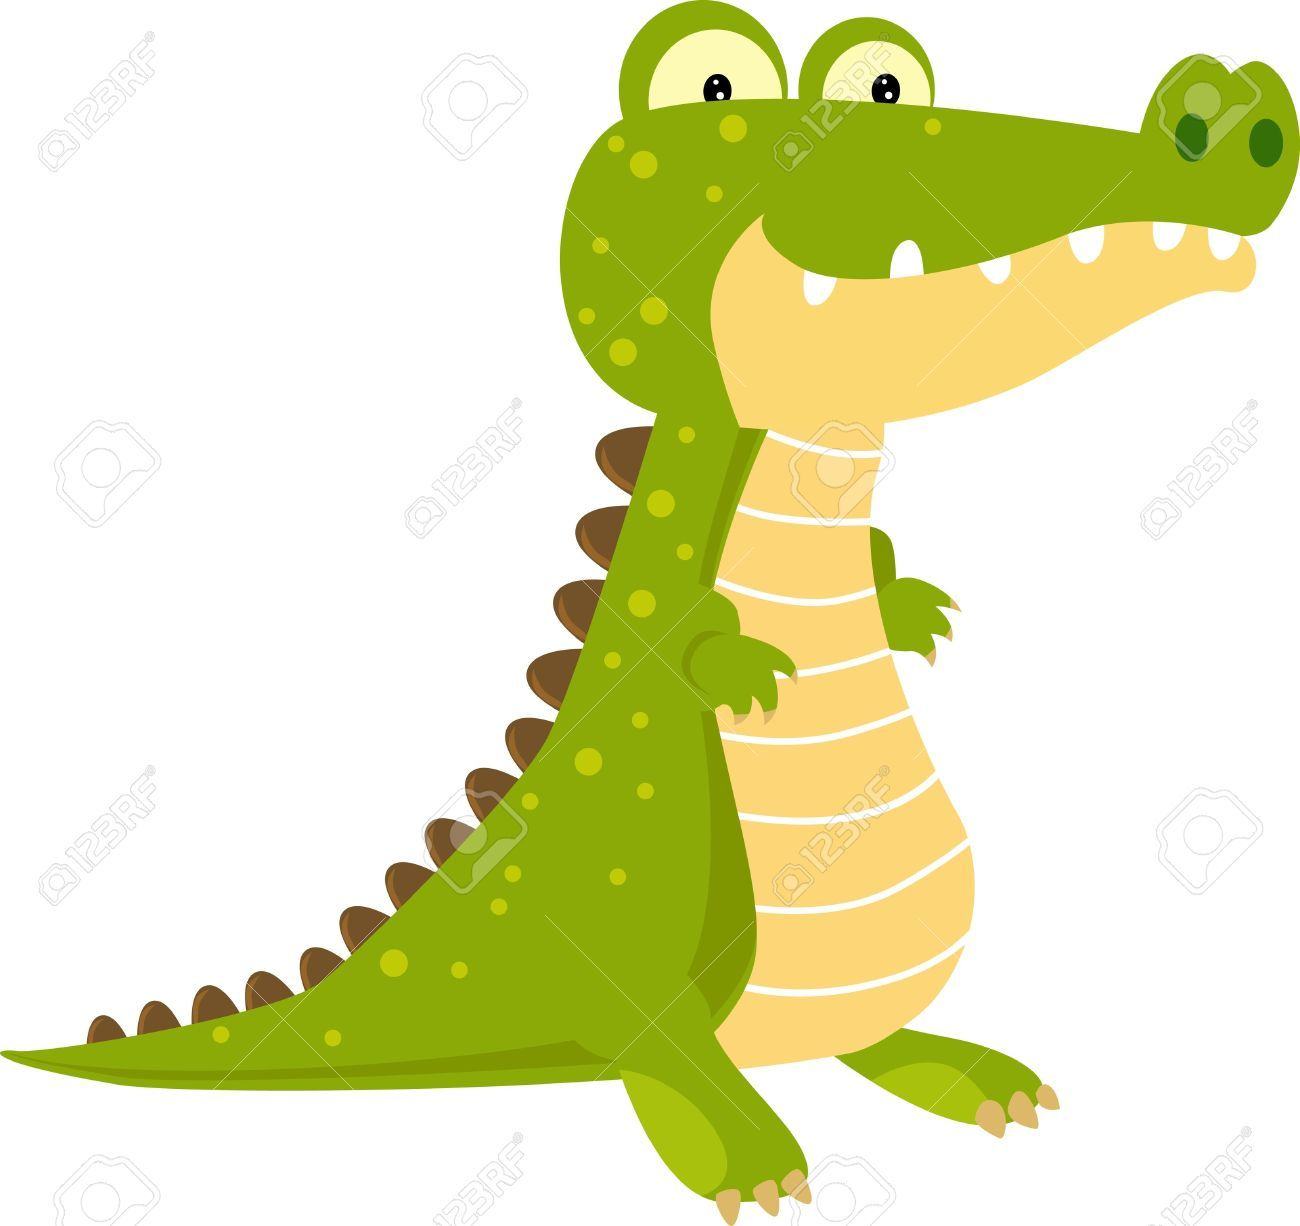 cute crocodile illustration - Google Search | CROCS ...